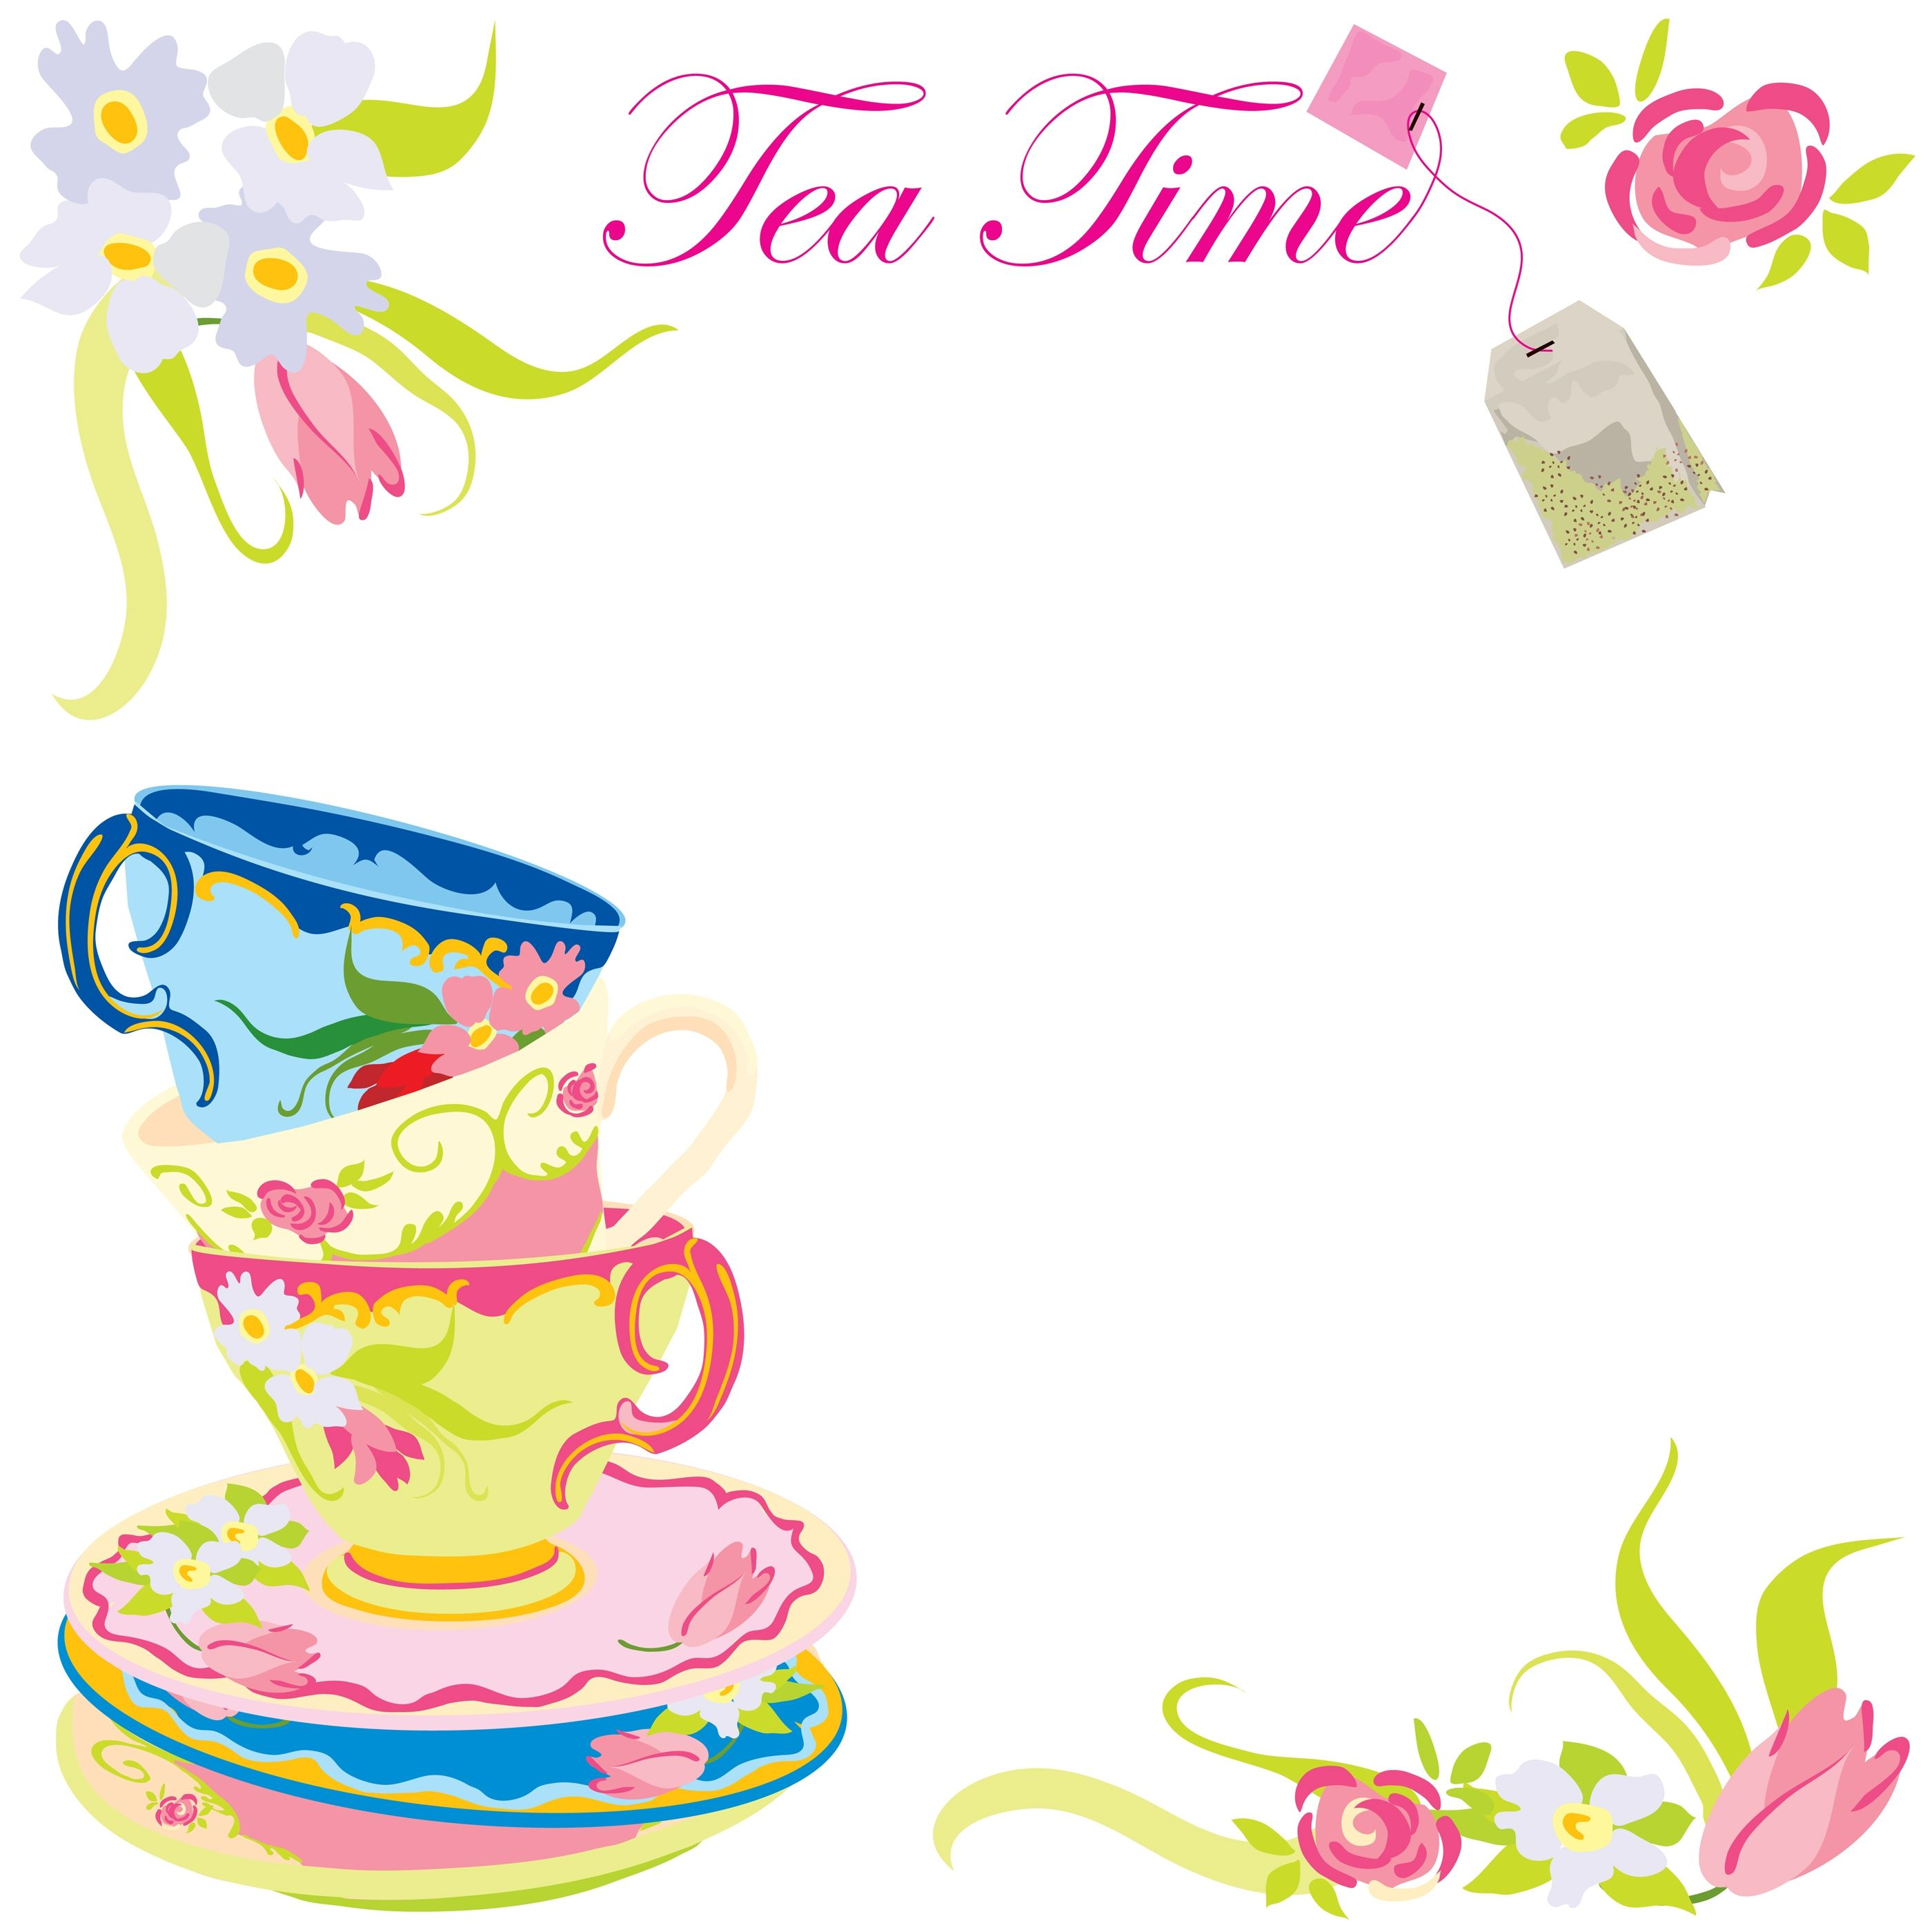 How To Create Tea Party Birthday Invitations Designs With.